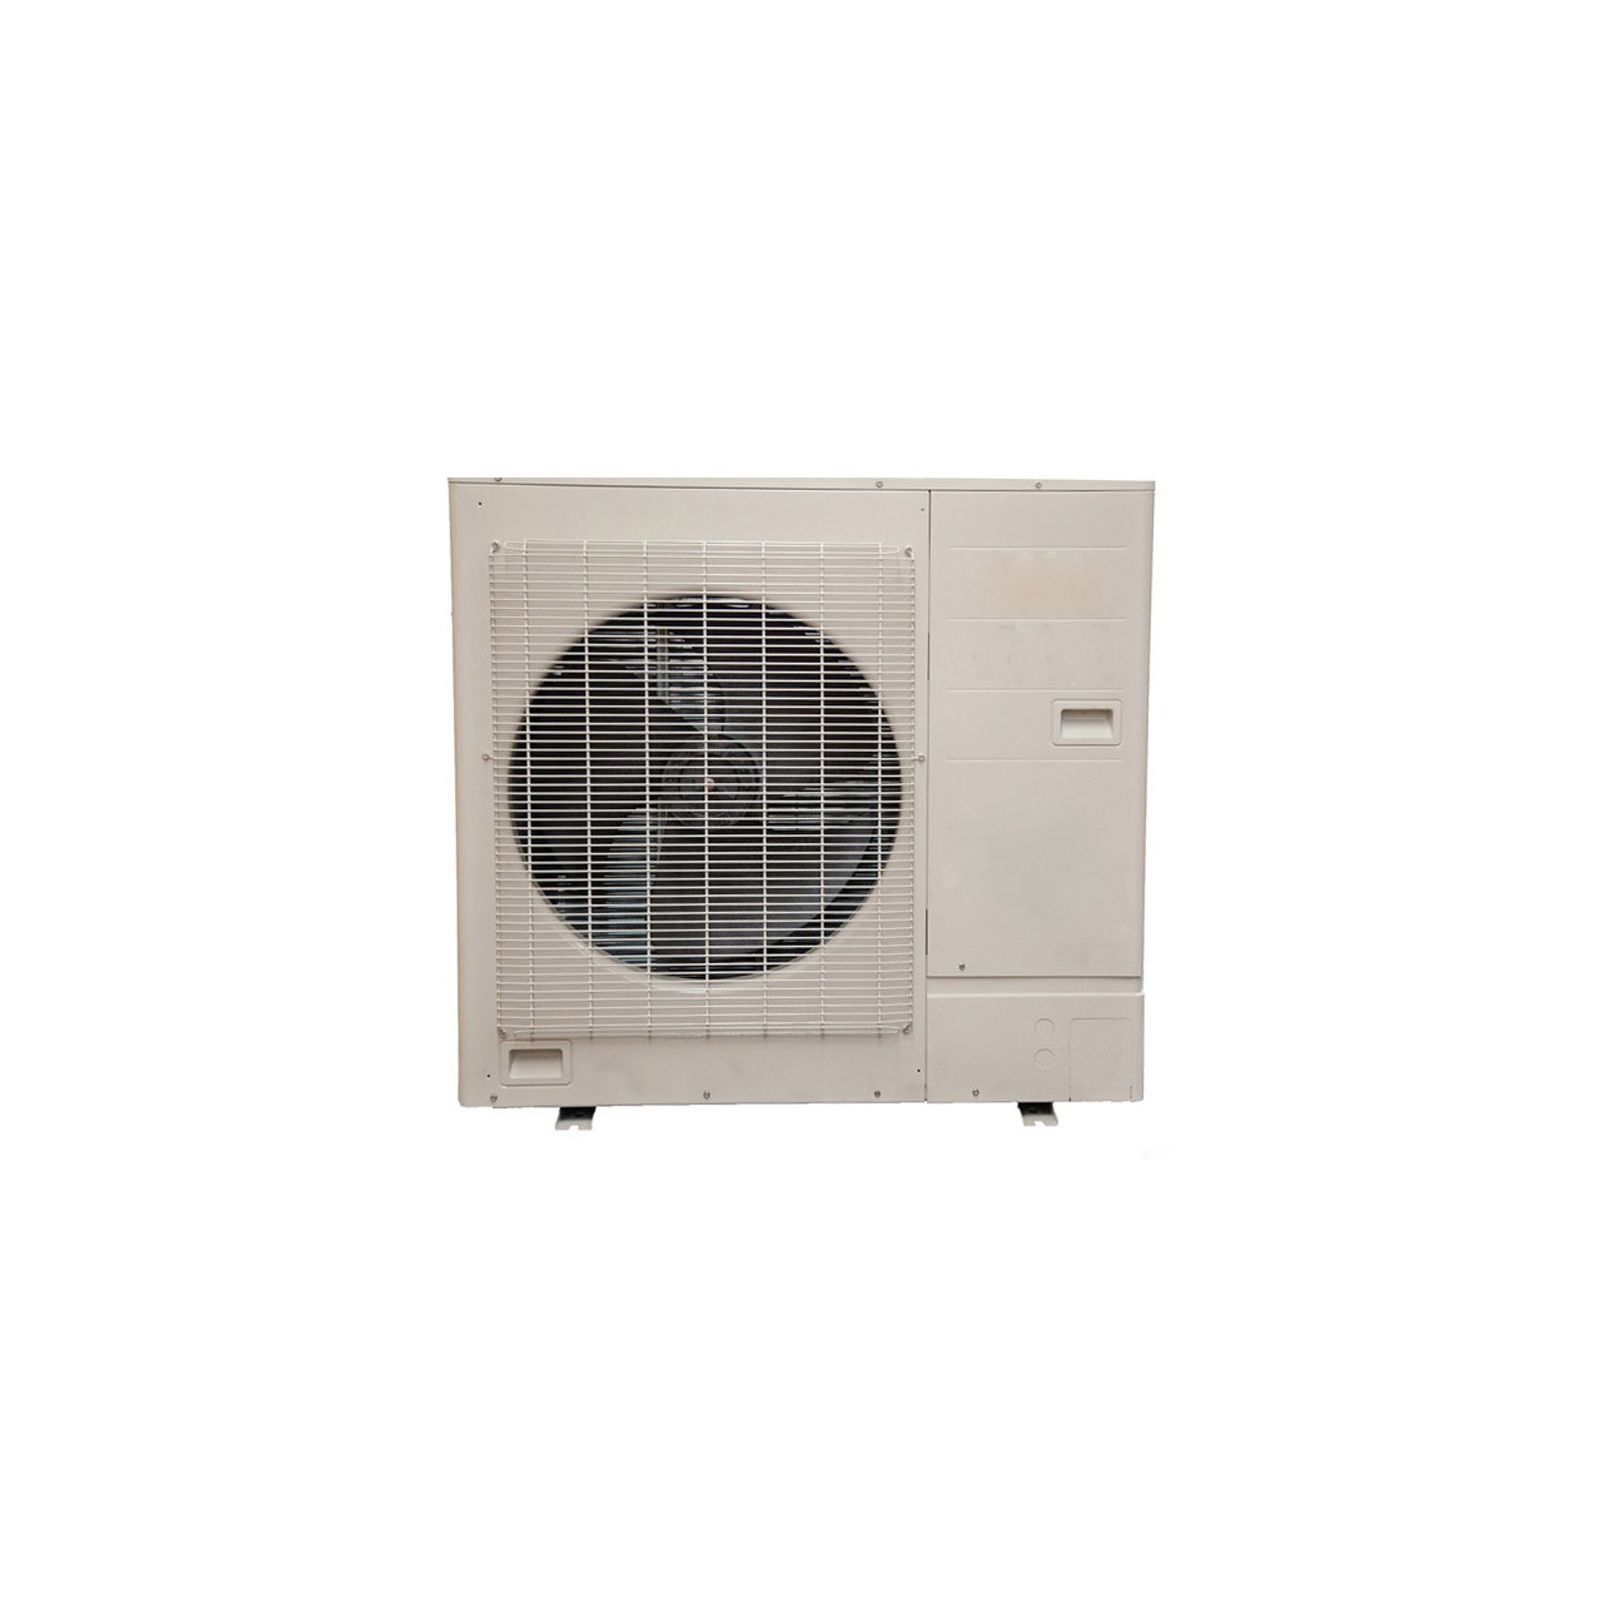 Fujitsu AOU48RLXFZ - 48K BTU, Up To 17 SEER, Multi-Zone Heat Pump Condenser, 208-230/1/60